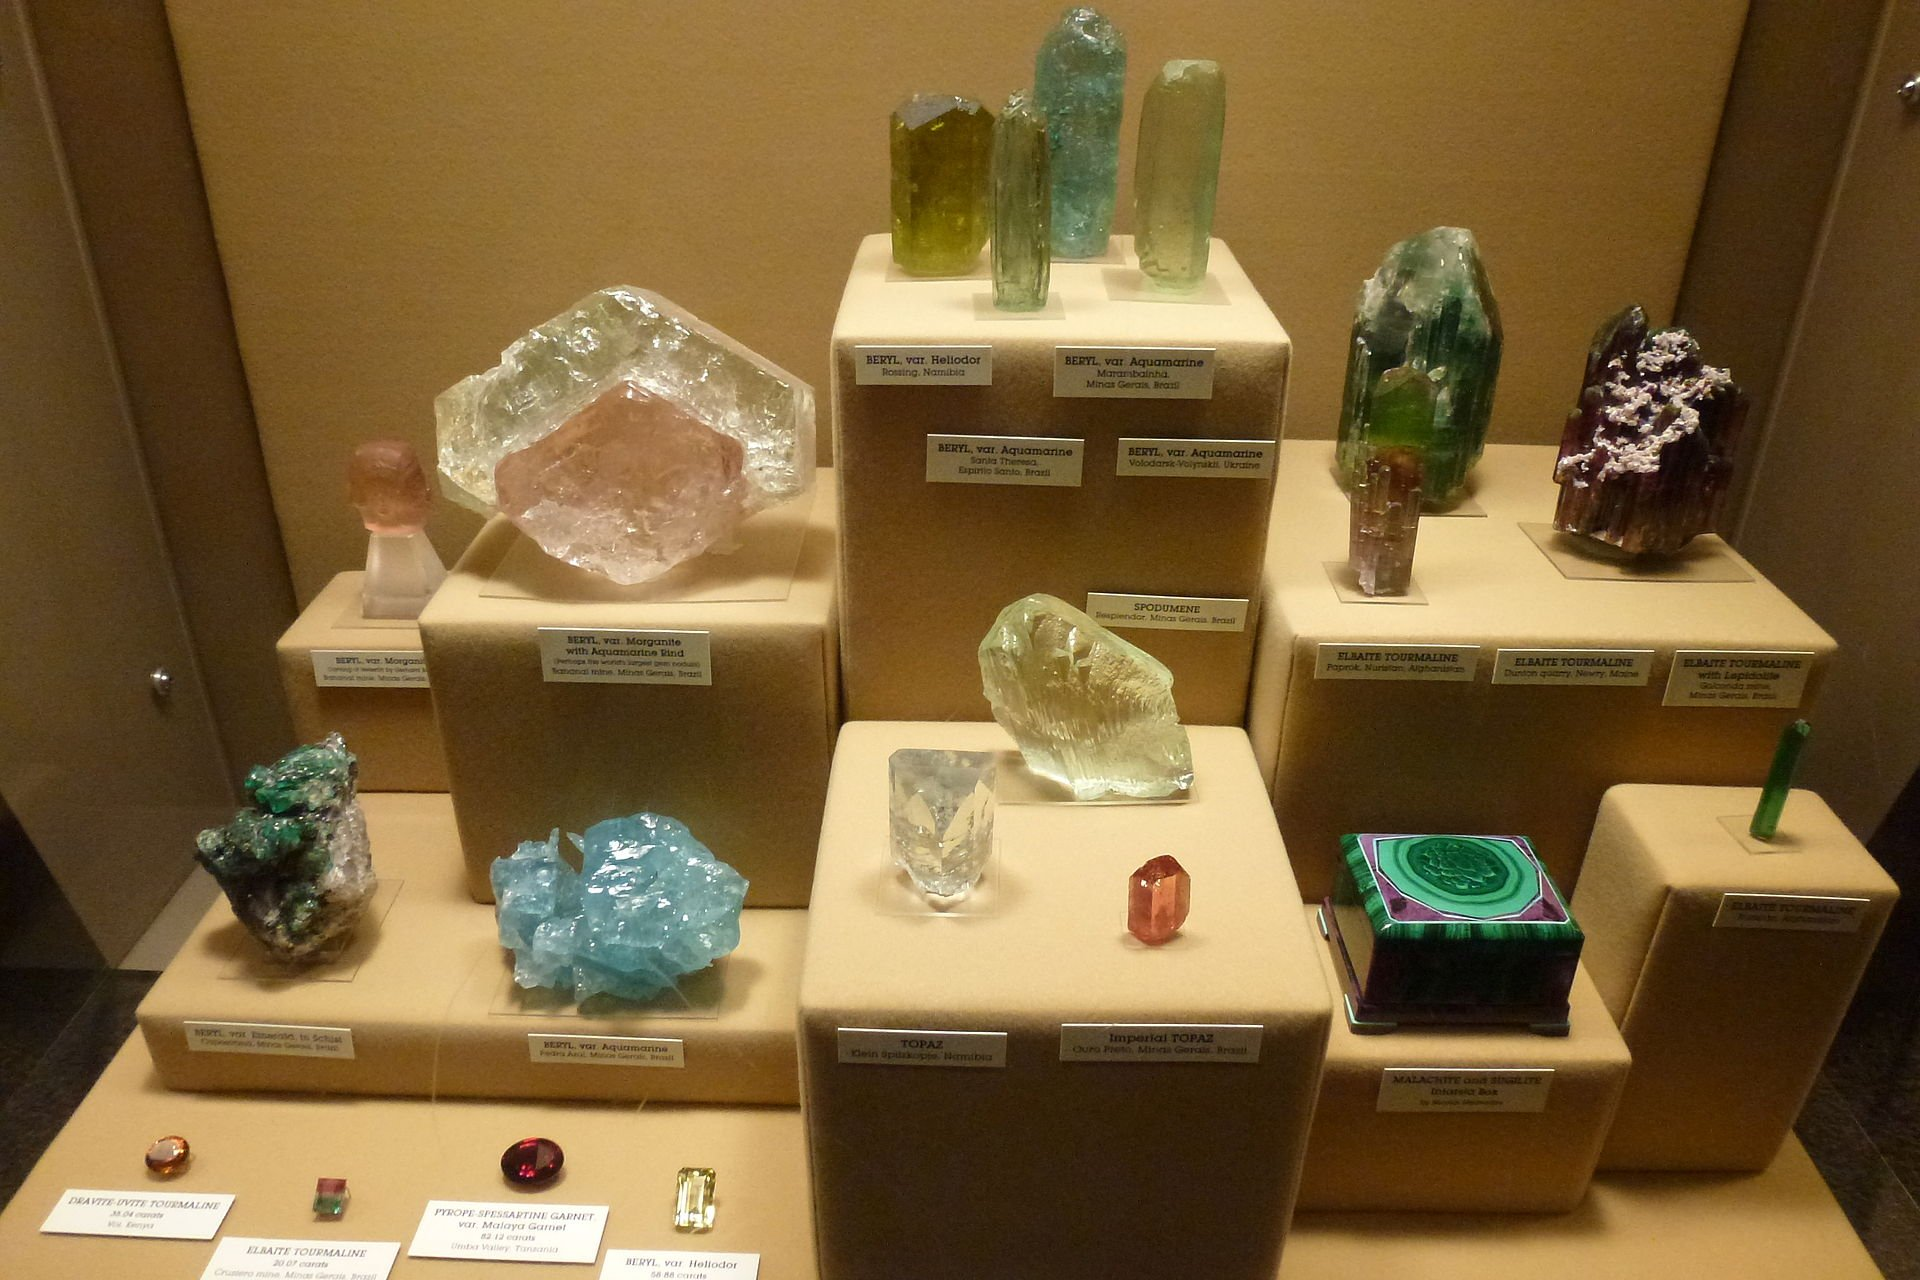 Many minerals, gems, and other rock specimens are on display.